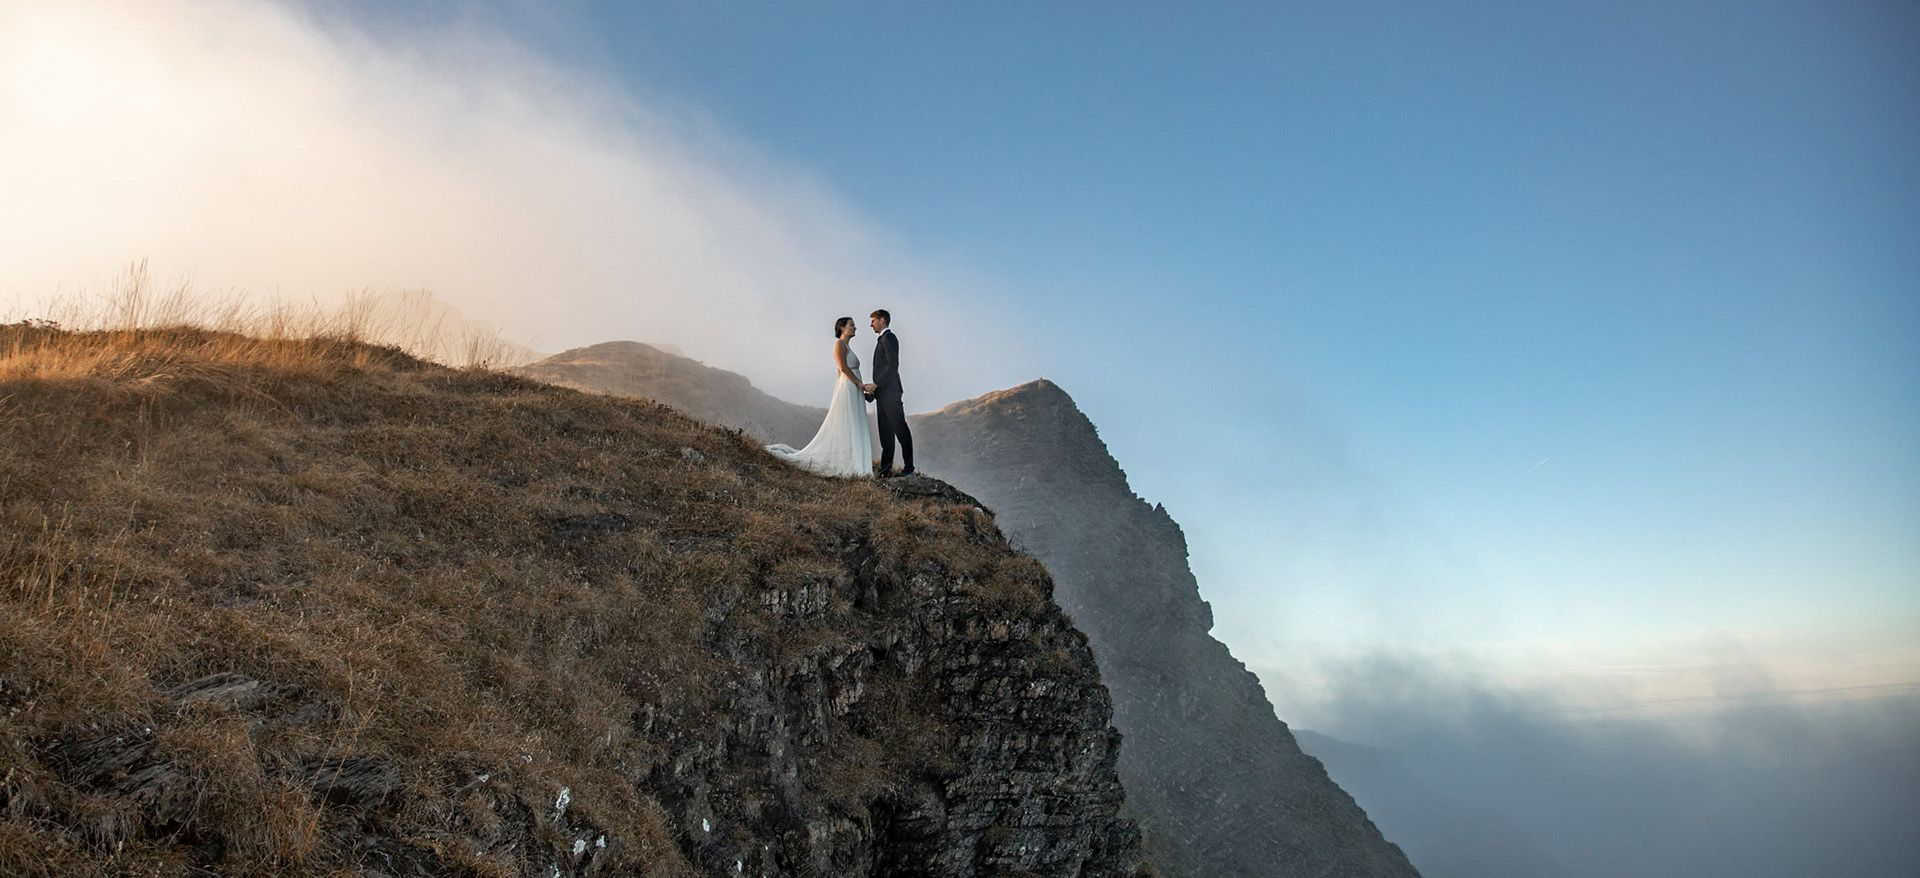 austria hiking adventure wedding package